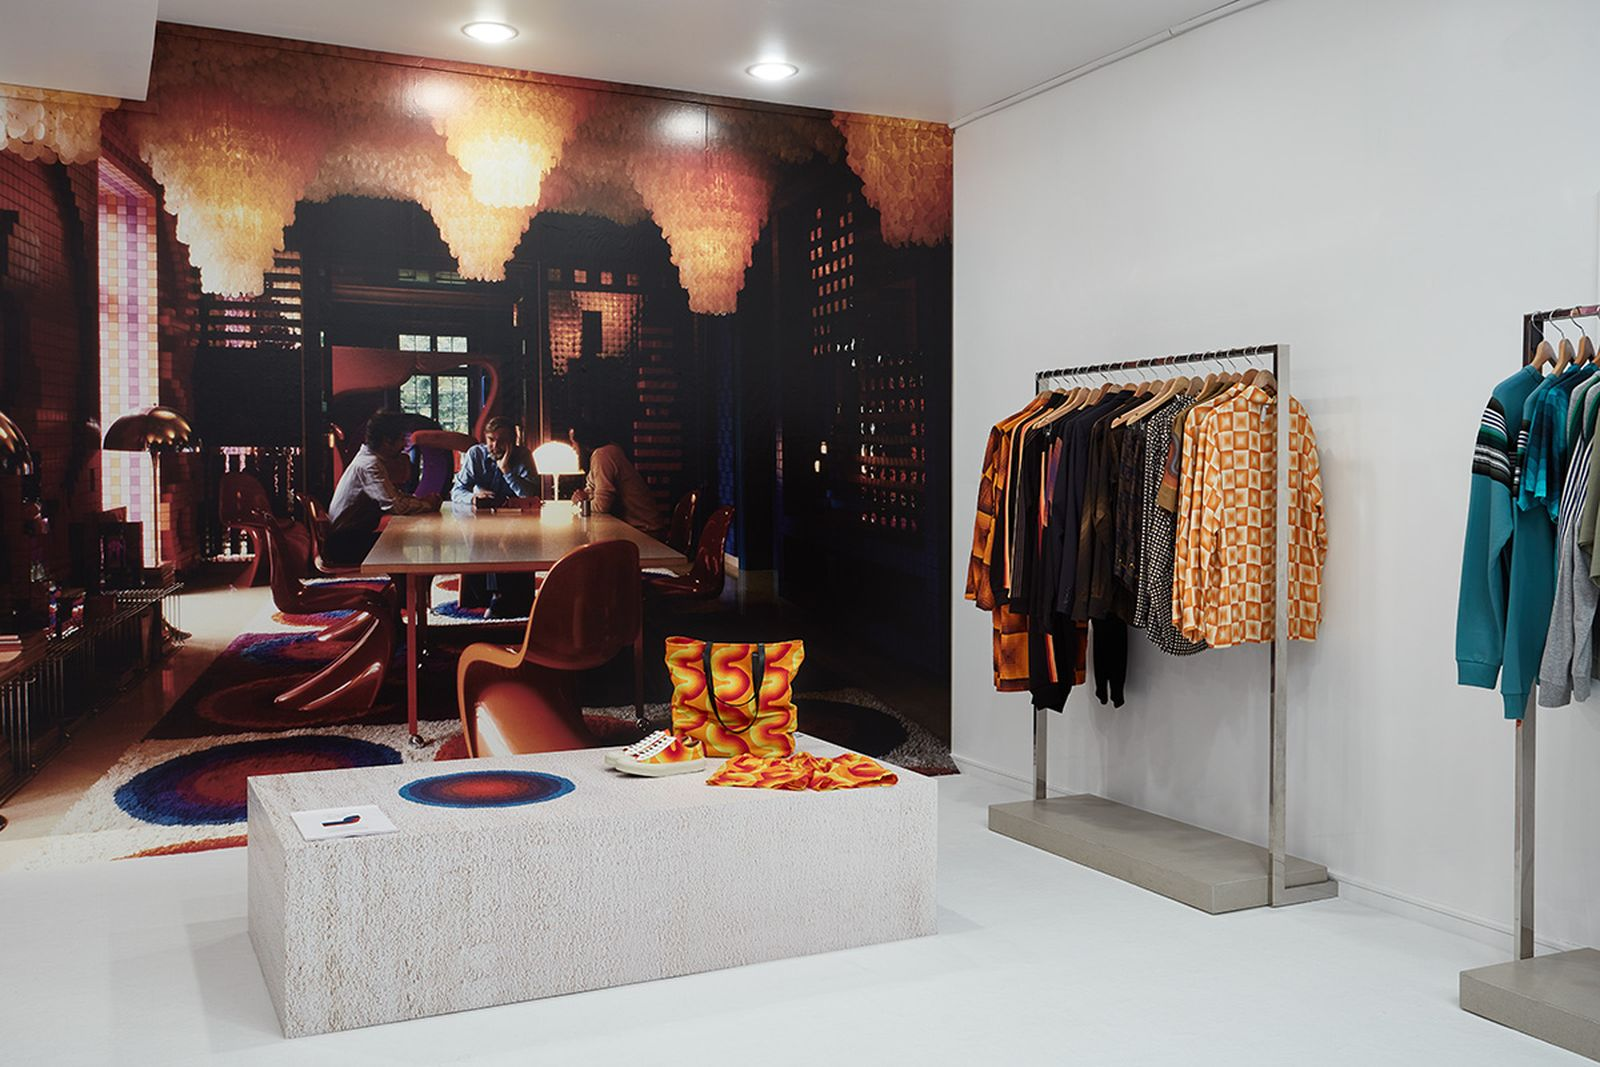 dries van noten opening ceremony ss19 pop up